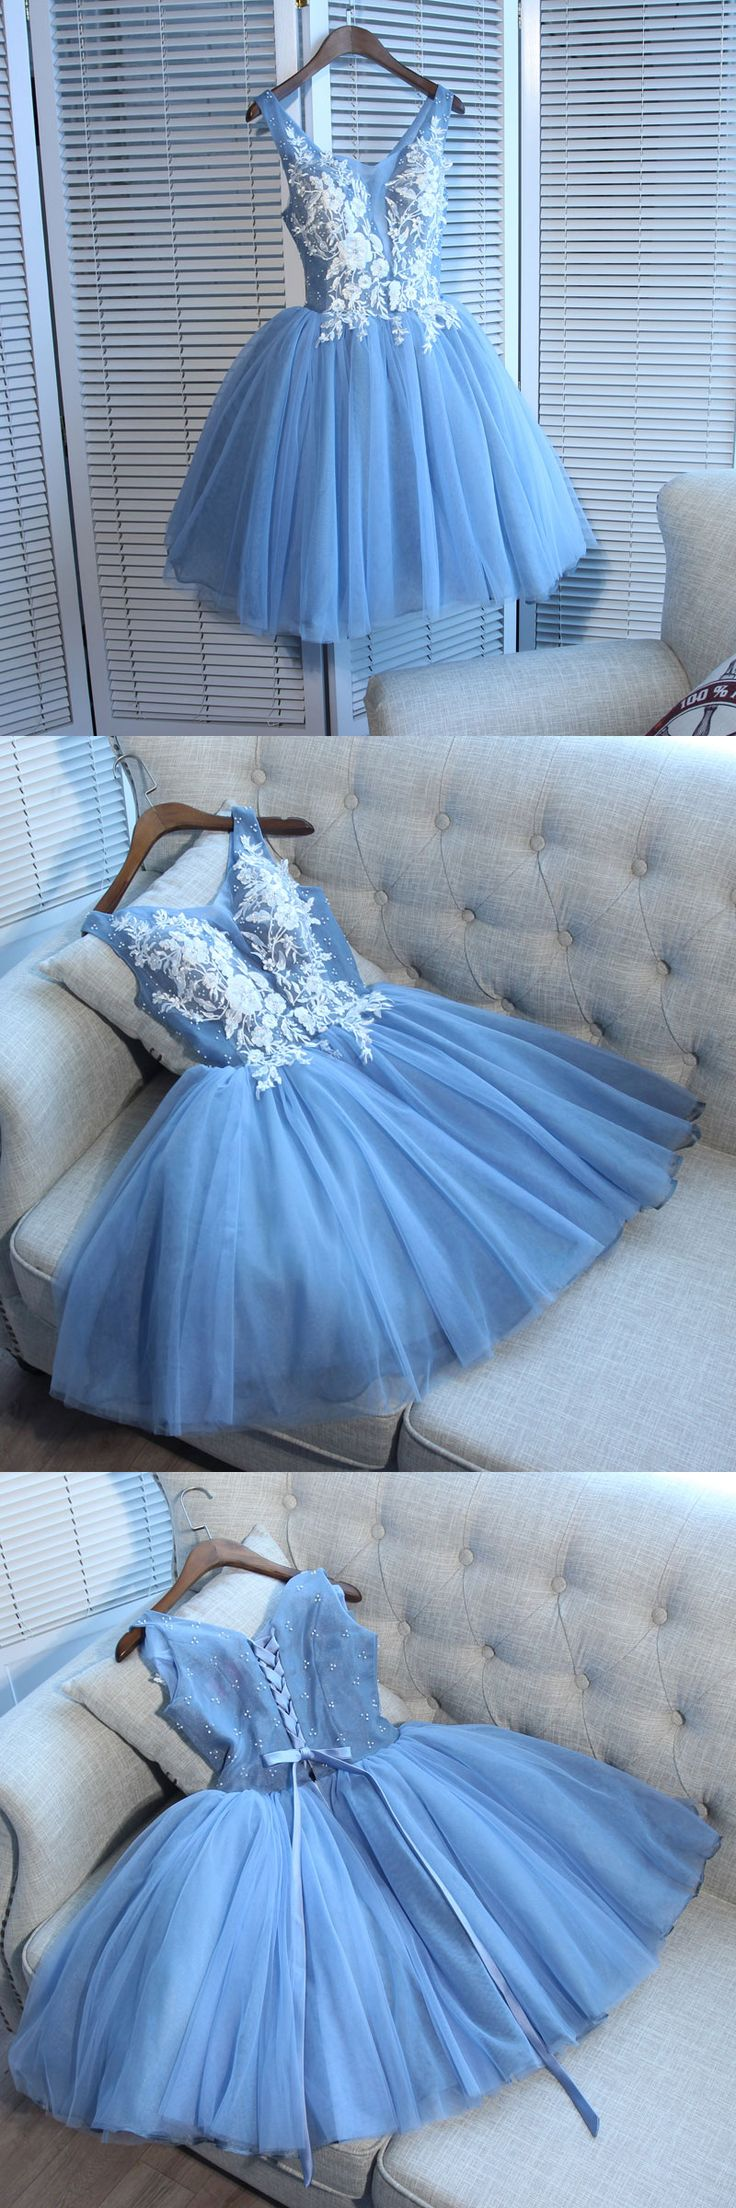 of girl | Cute blue lace short prom dress, blue homecoming dress | Online Store Powered by Storenvy